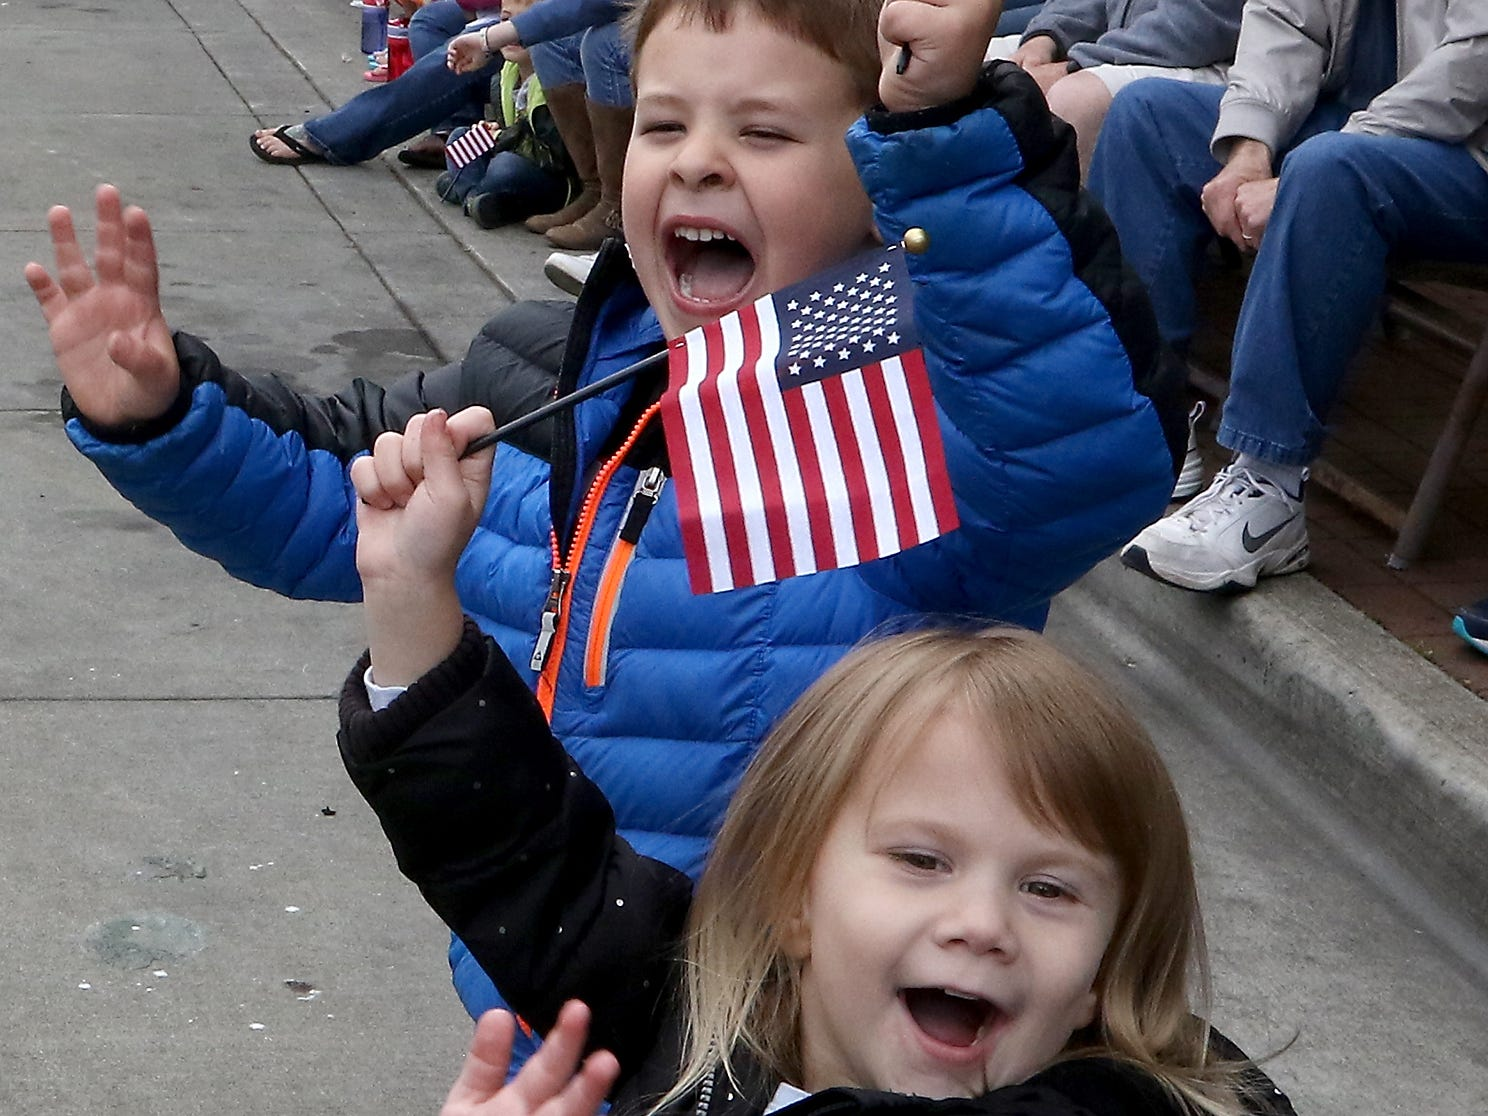 Joel Deem, 5, (back) and Aria Nordeen, 3, exuberantly wave their flags at the Bremerton Fire Department trucks passing them during the Armed Forces Day Parade in downtown Bremerton, Washington on Saturday, May 19, 2018.